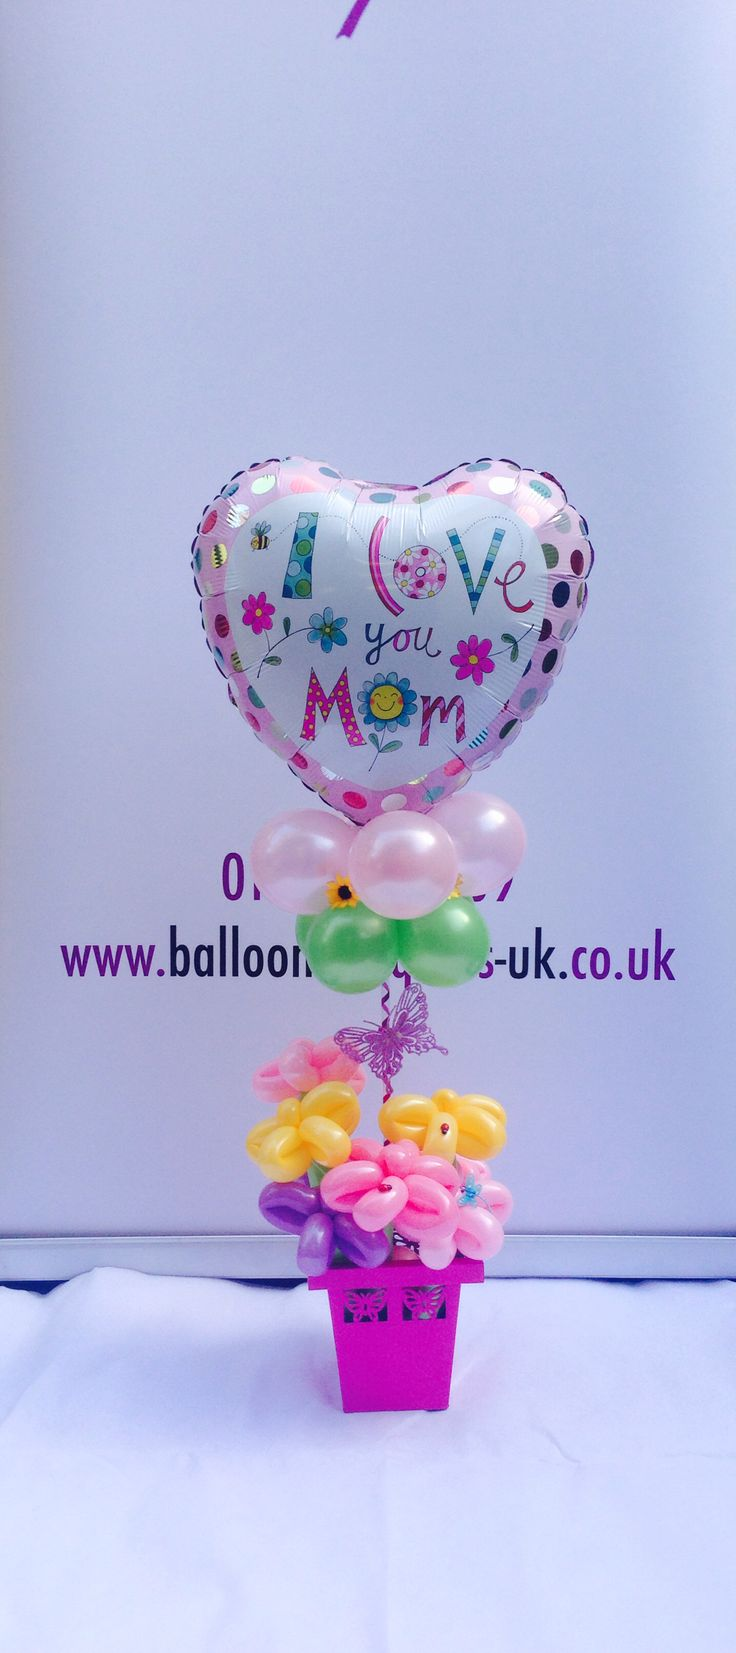 Mothers Day balloons or Birthday Balloons Designed by www.balloonbouquets-uk.co.uk